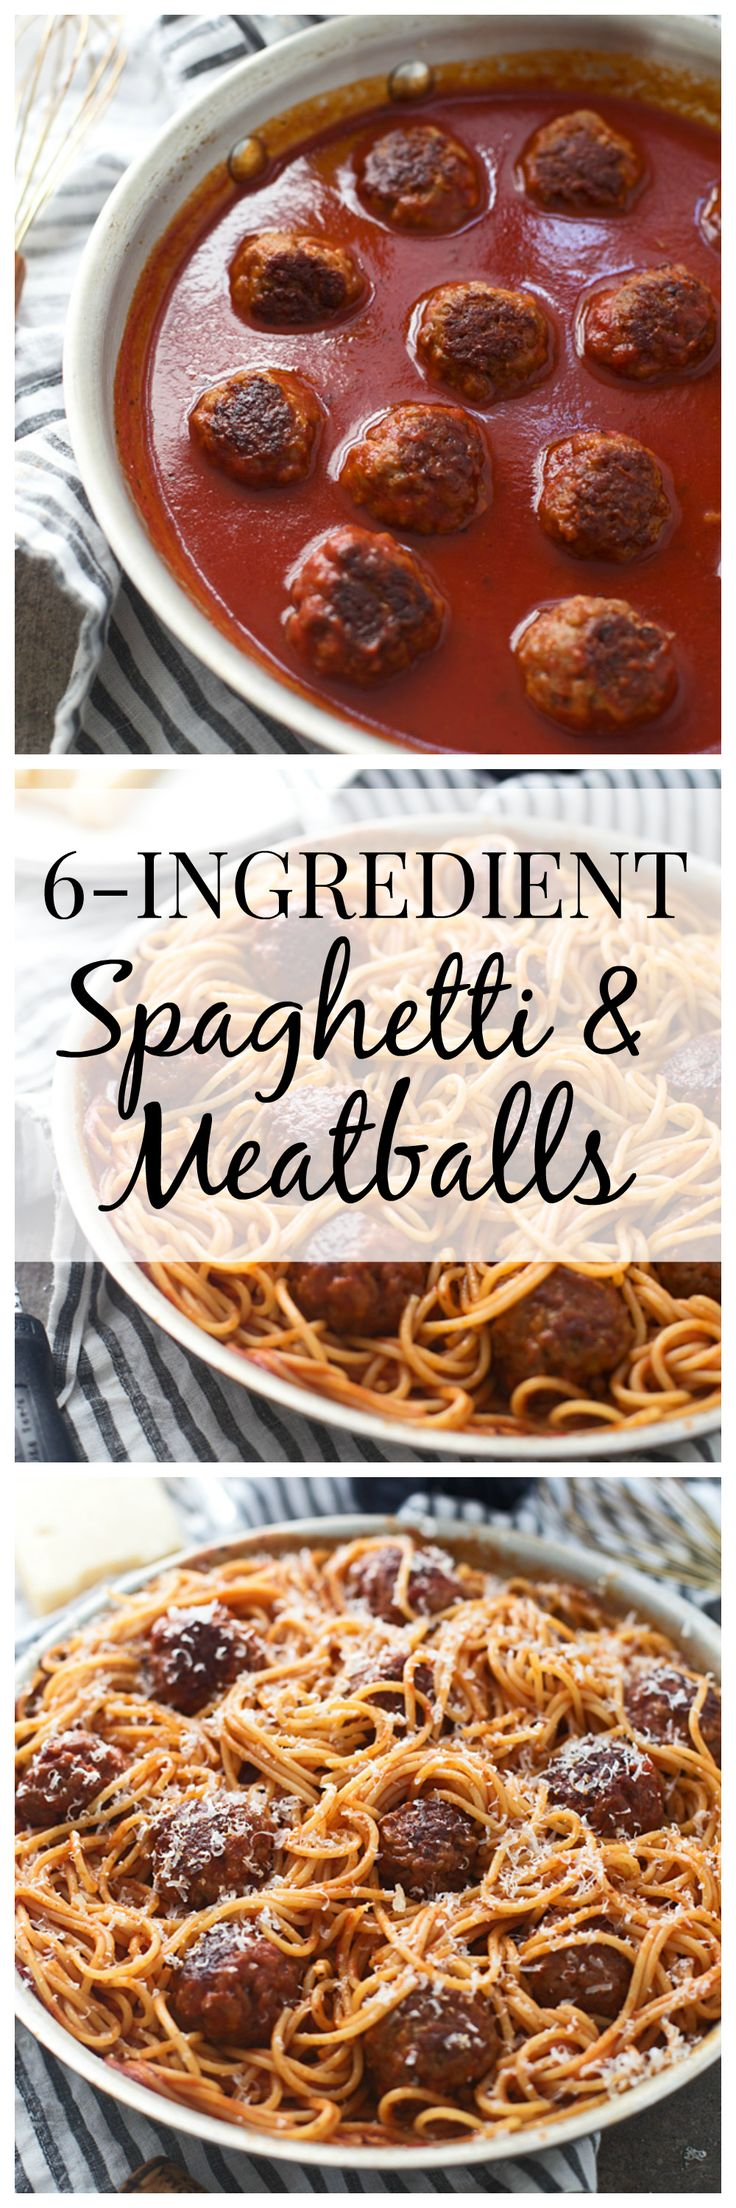 Six Ingredient Spaghetti & Meatballs - This is easy and quick to throw together, but has every bit as much flavor as the original!